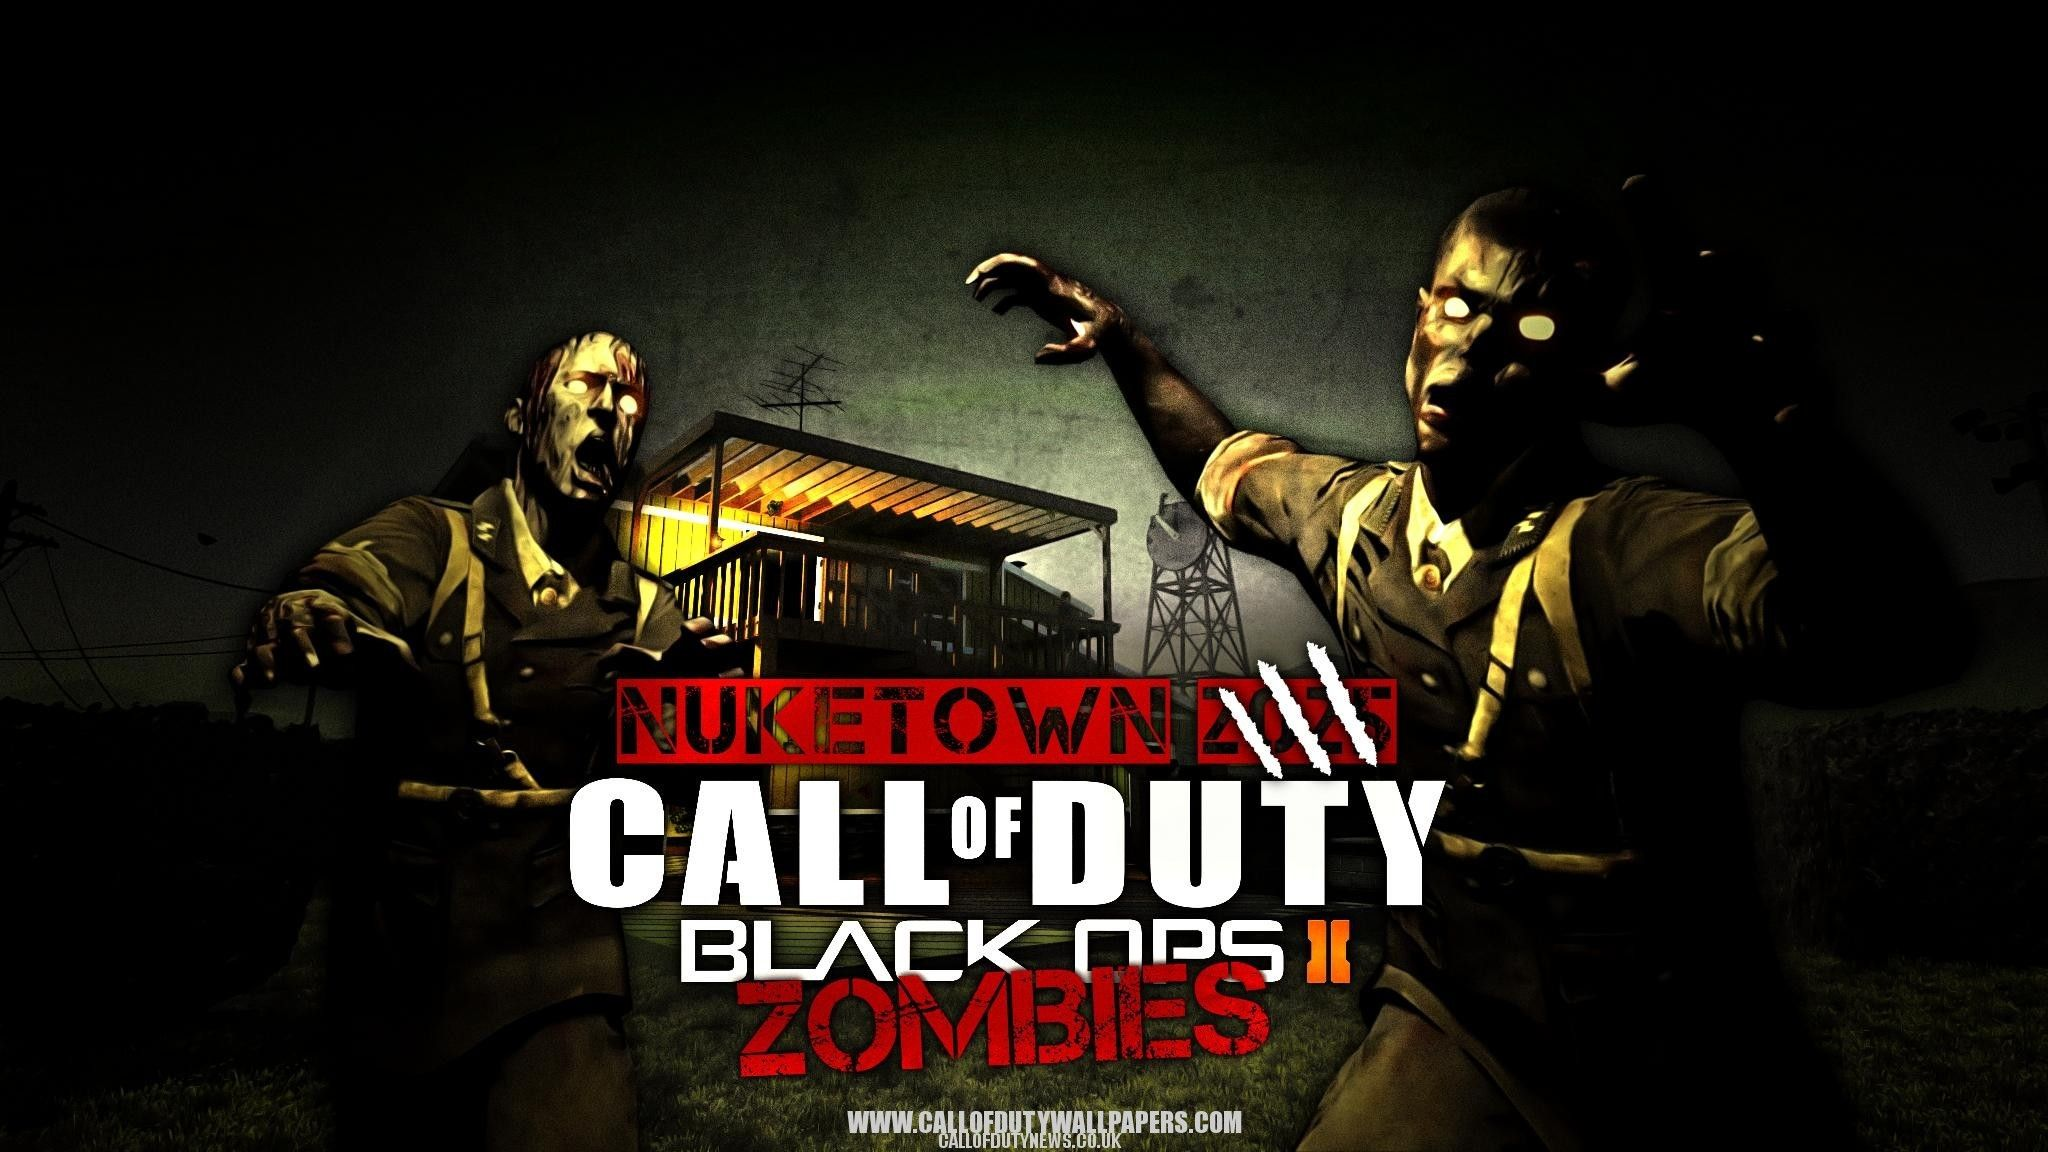 black ops ii | zombies wallpaper #3 | call of duty wallpapers | call